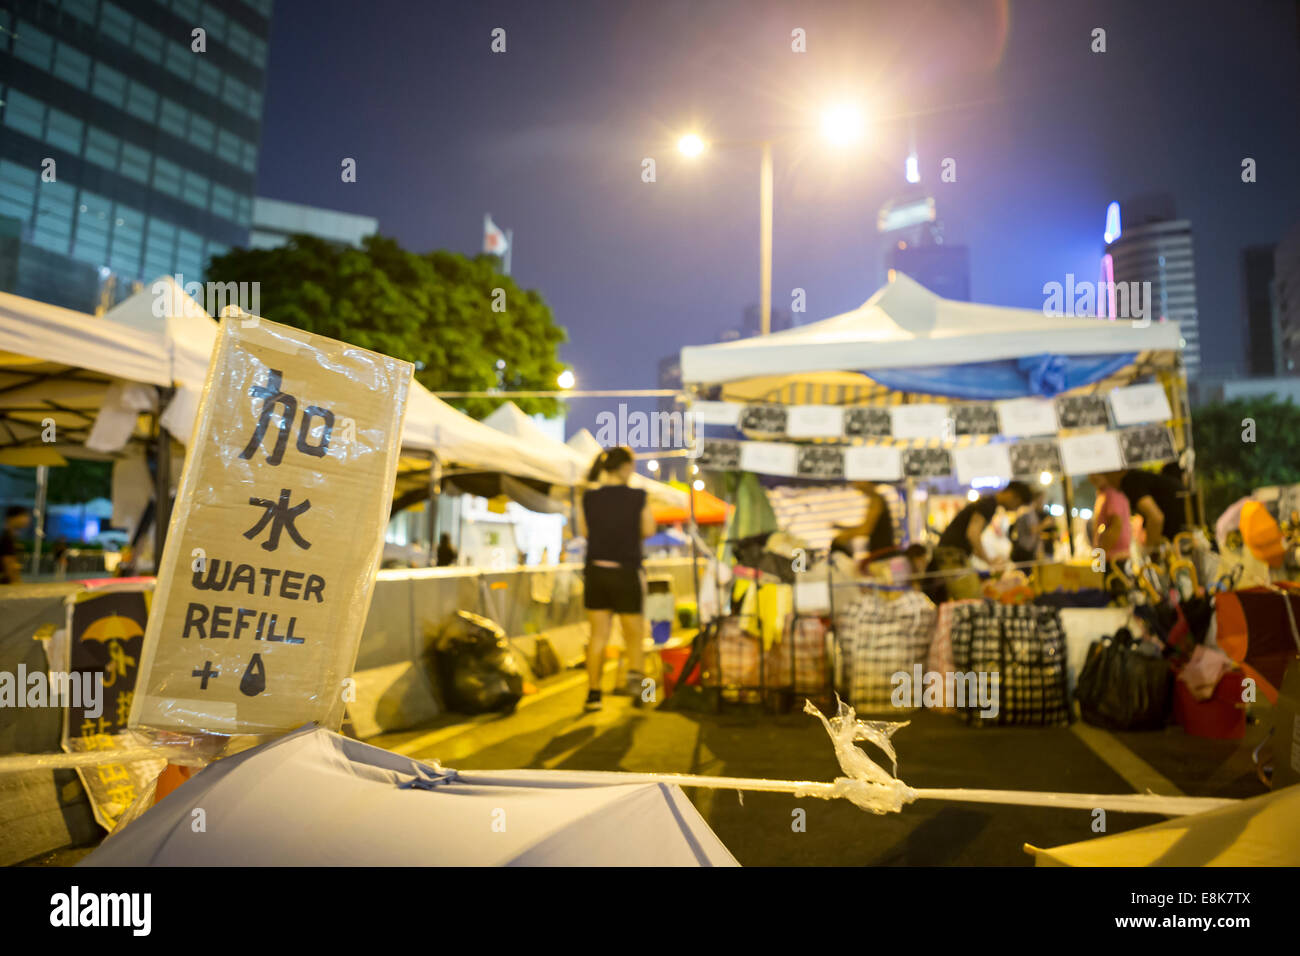 Water refill station at occupy central campaign - Stock Image